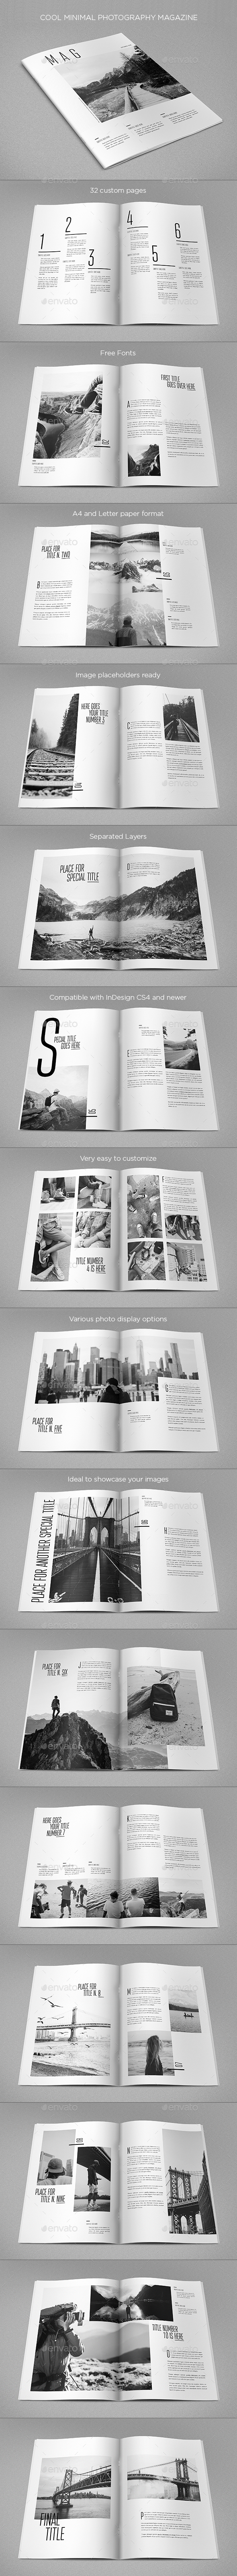 Cool Minimal Photography Magazine - Magazines Print Templates